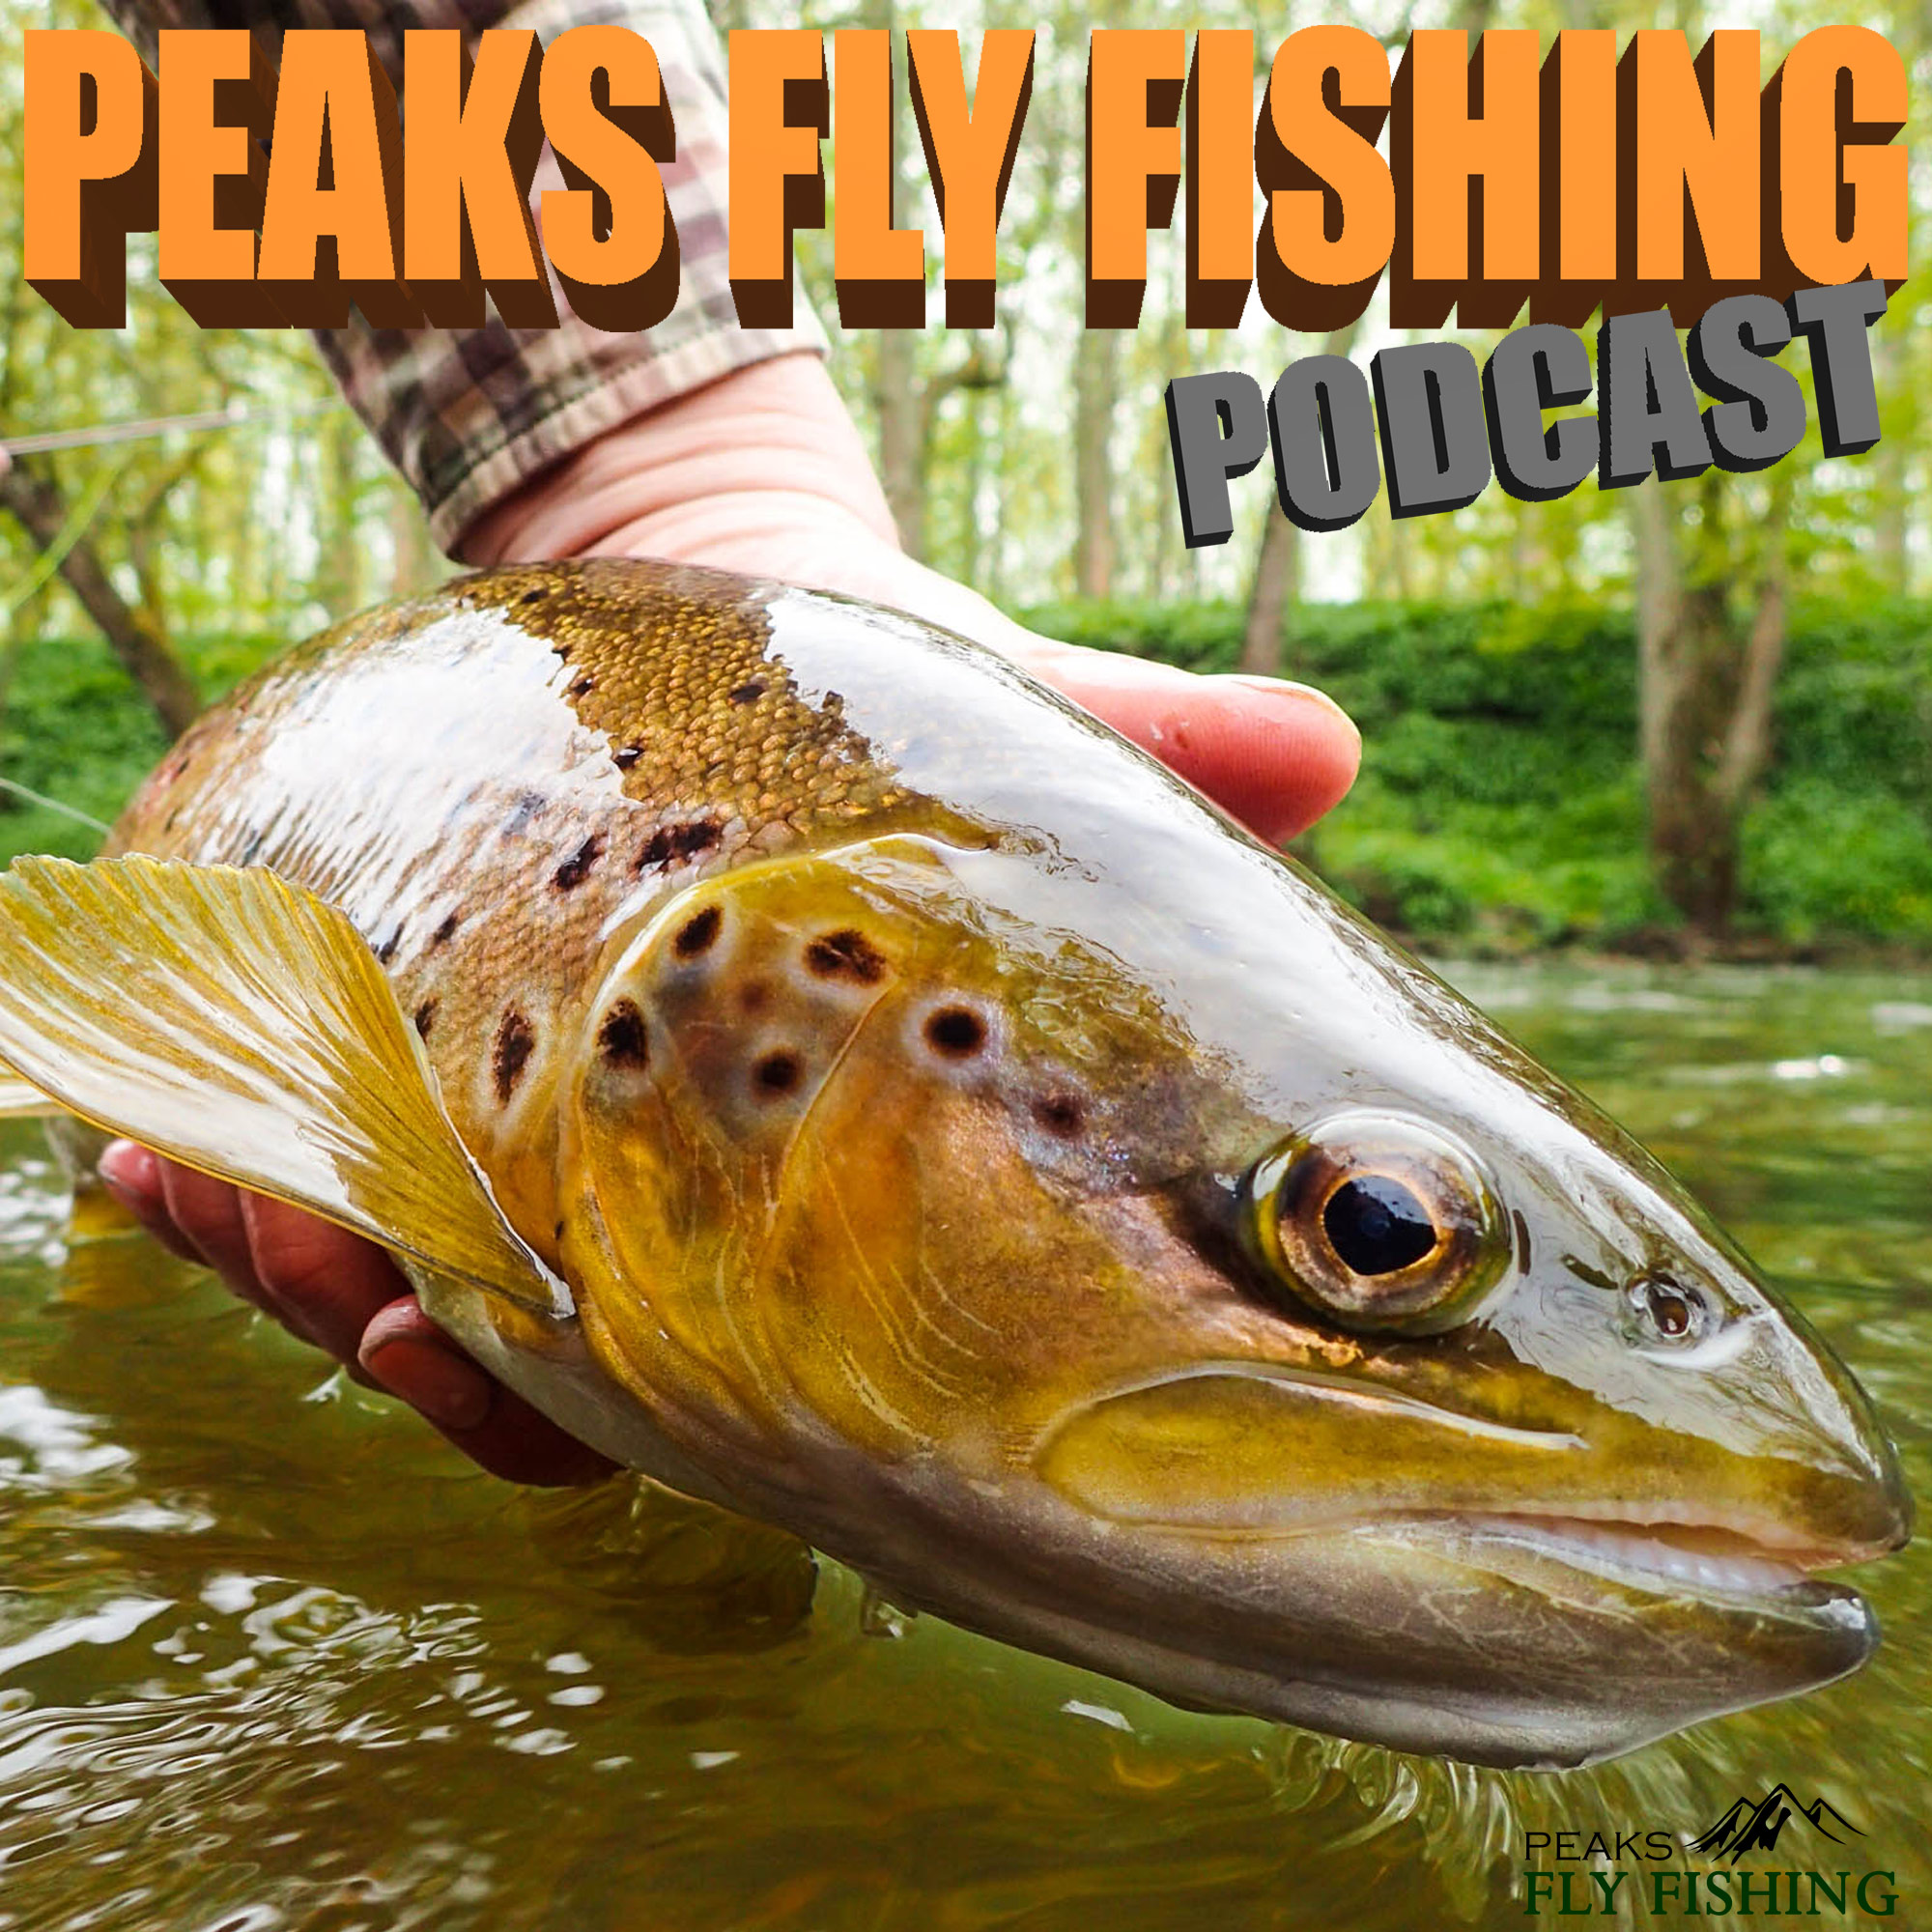 Peaks Fly Fishing Podcast Fly Fishing Podcast - Saltwater Fly Fishing In Anglesea